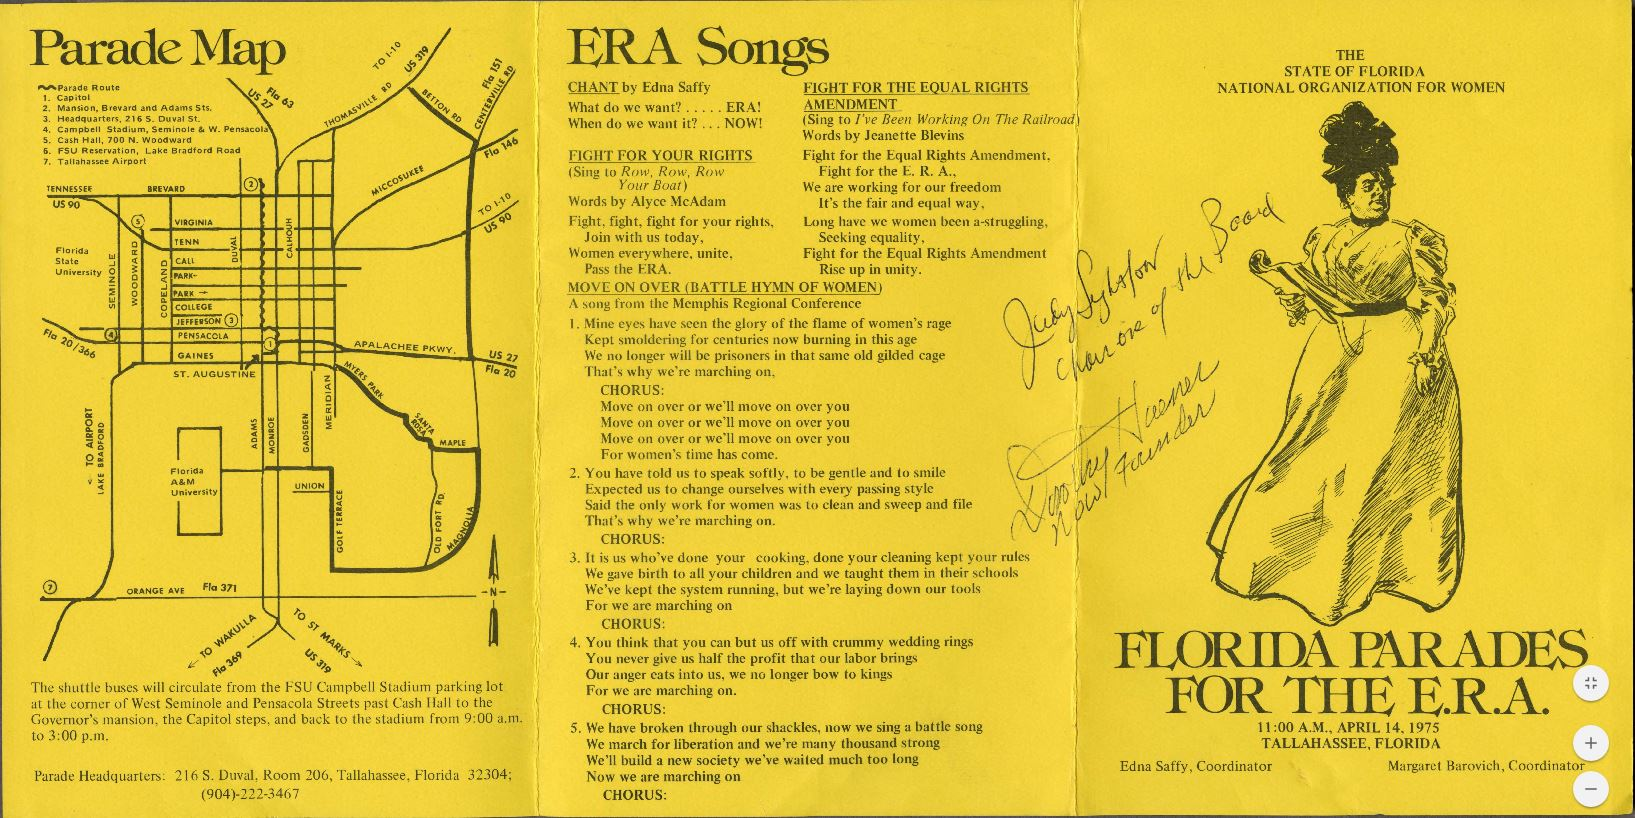 Florida Parades for the ERA program image